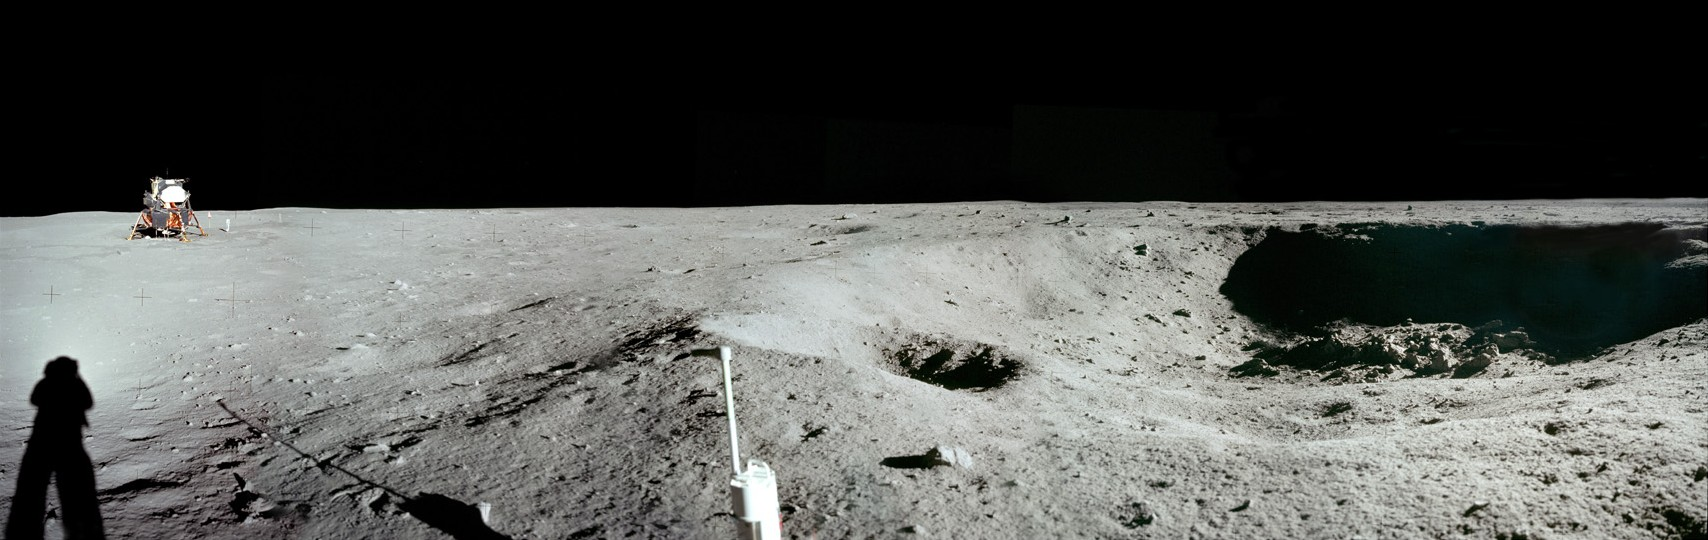 Apollo 11 East Crater